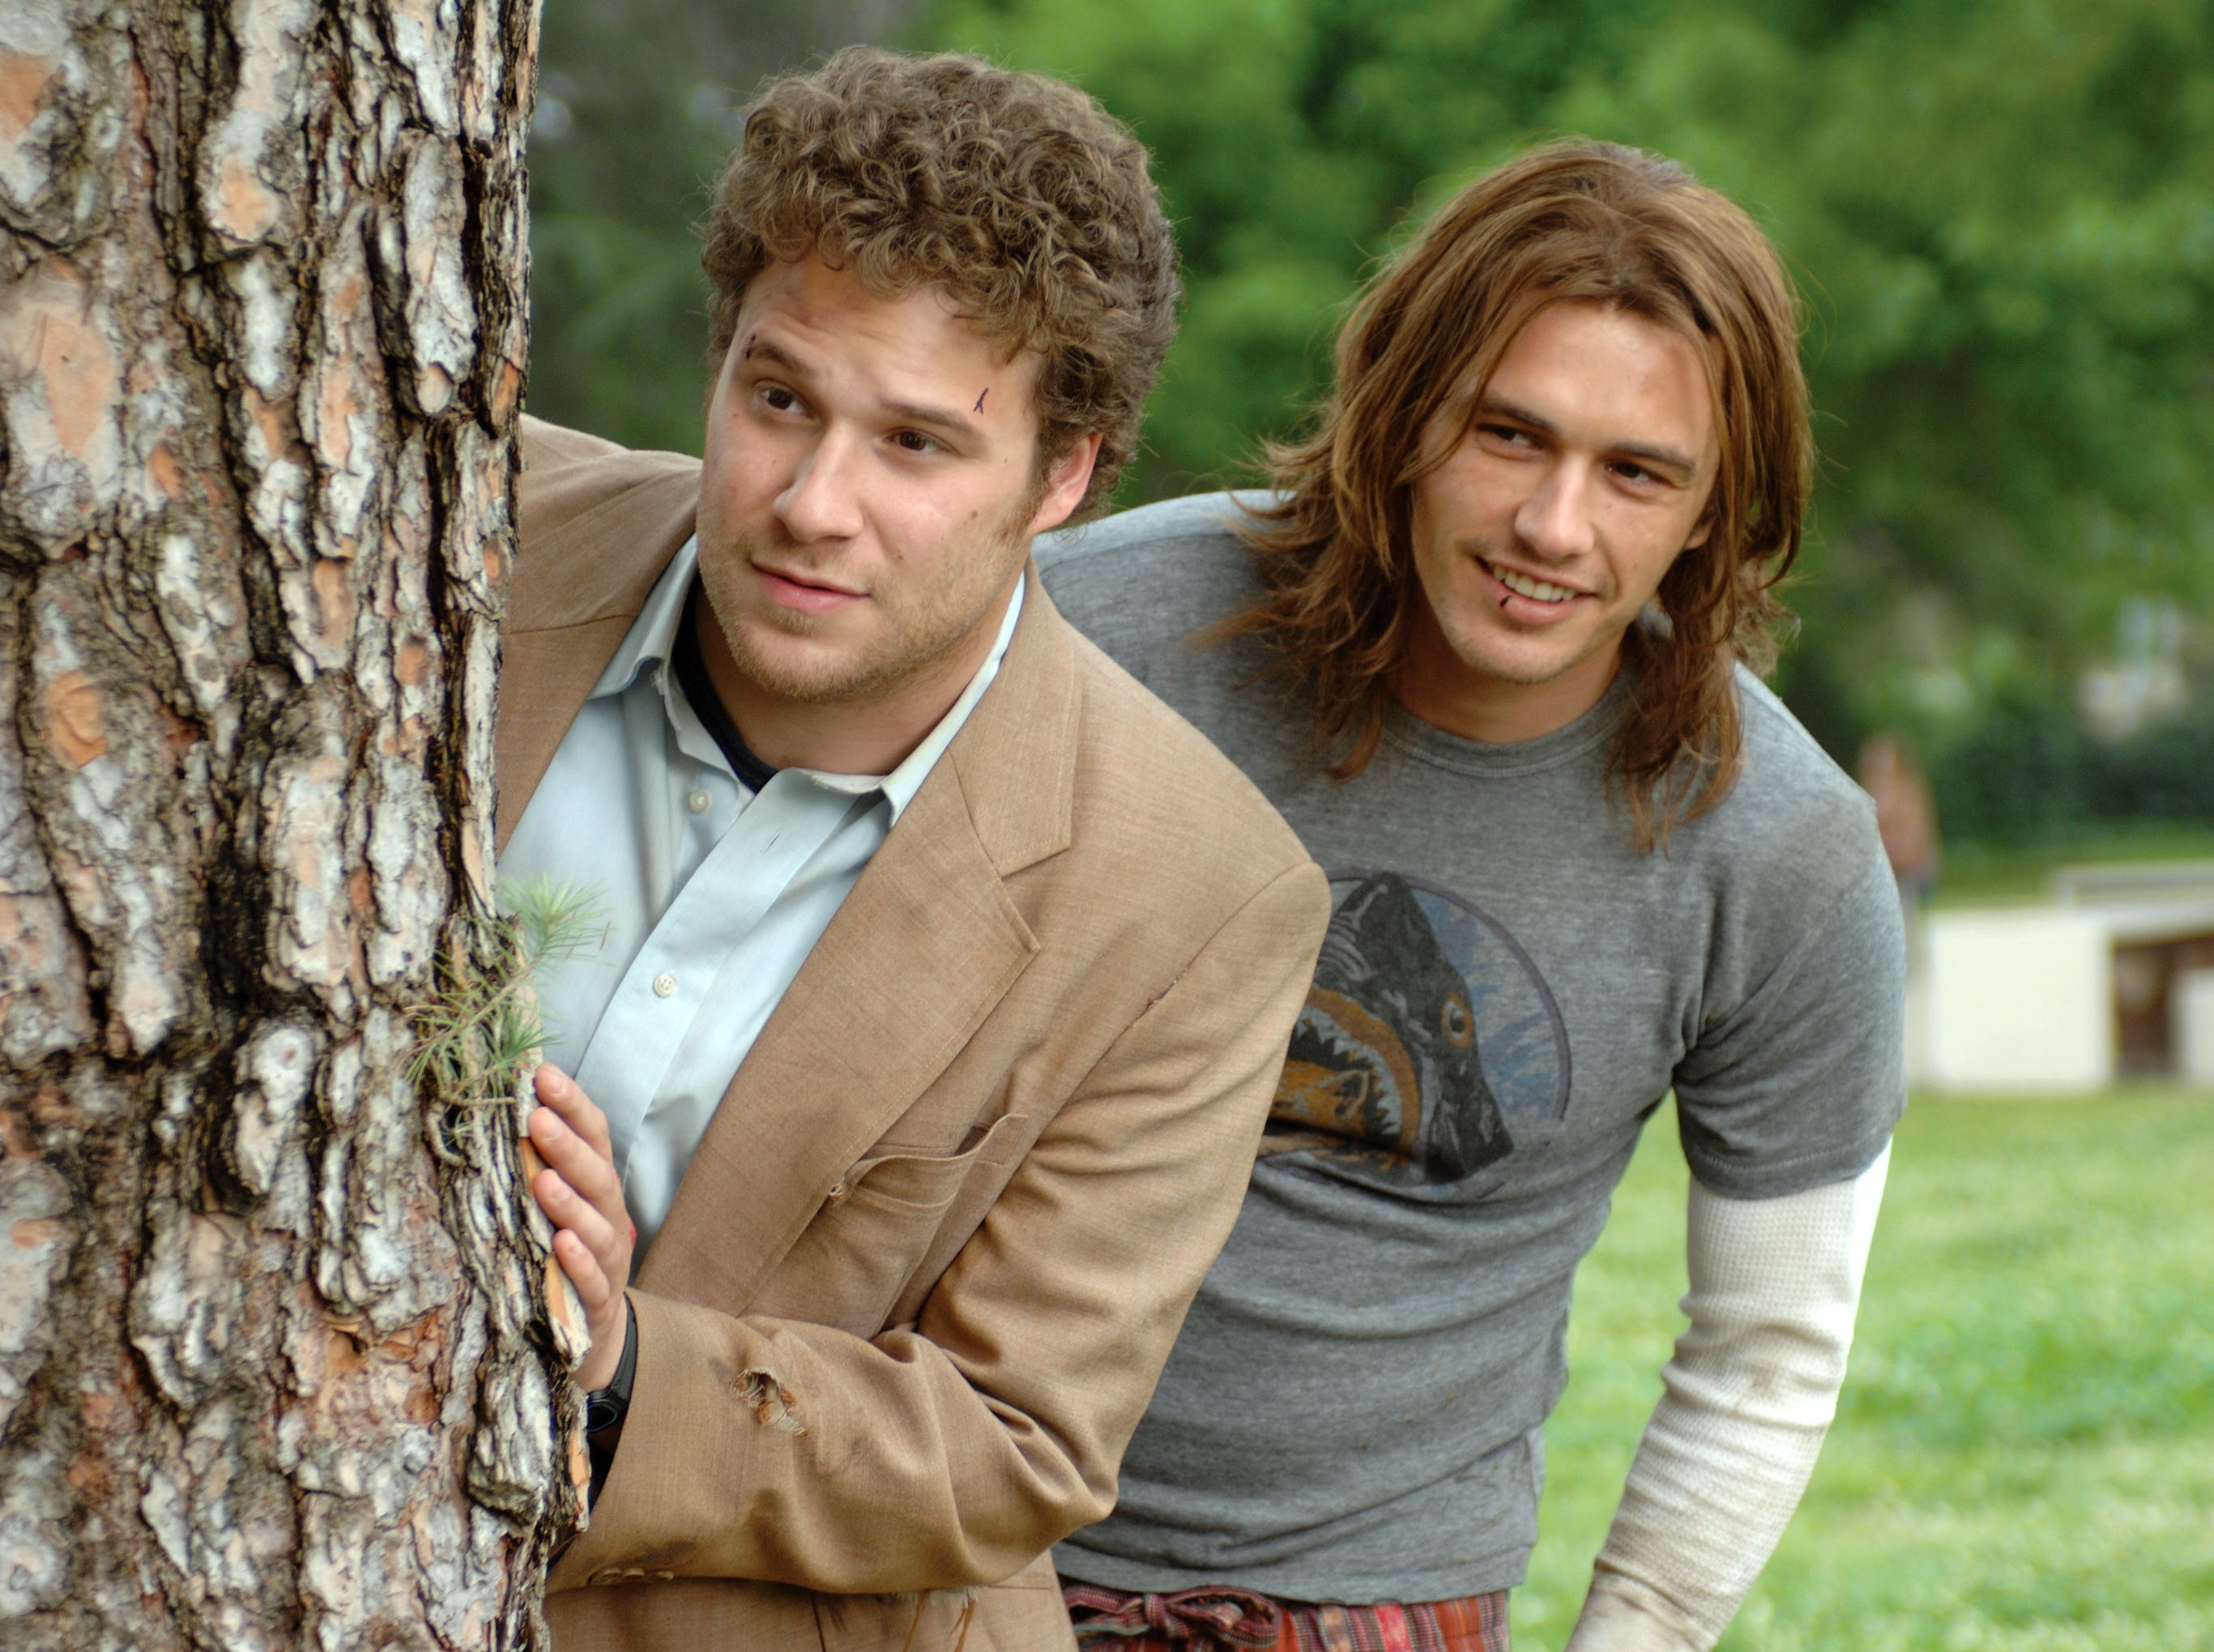 """Seth Rogen, left, and James Franco in a scene from the motion picture """"Pineapple Express."""" Photo by Dale Robinette, Sony Pictures (Via MerlinFTP Drop)"""